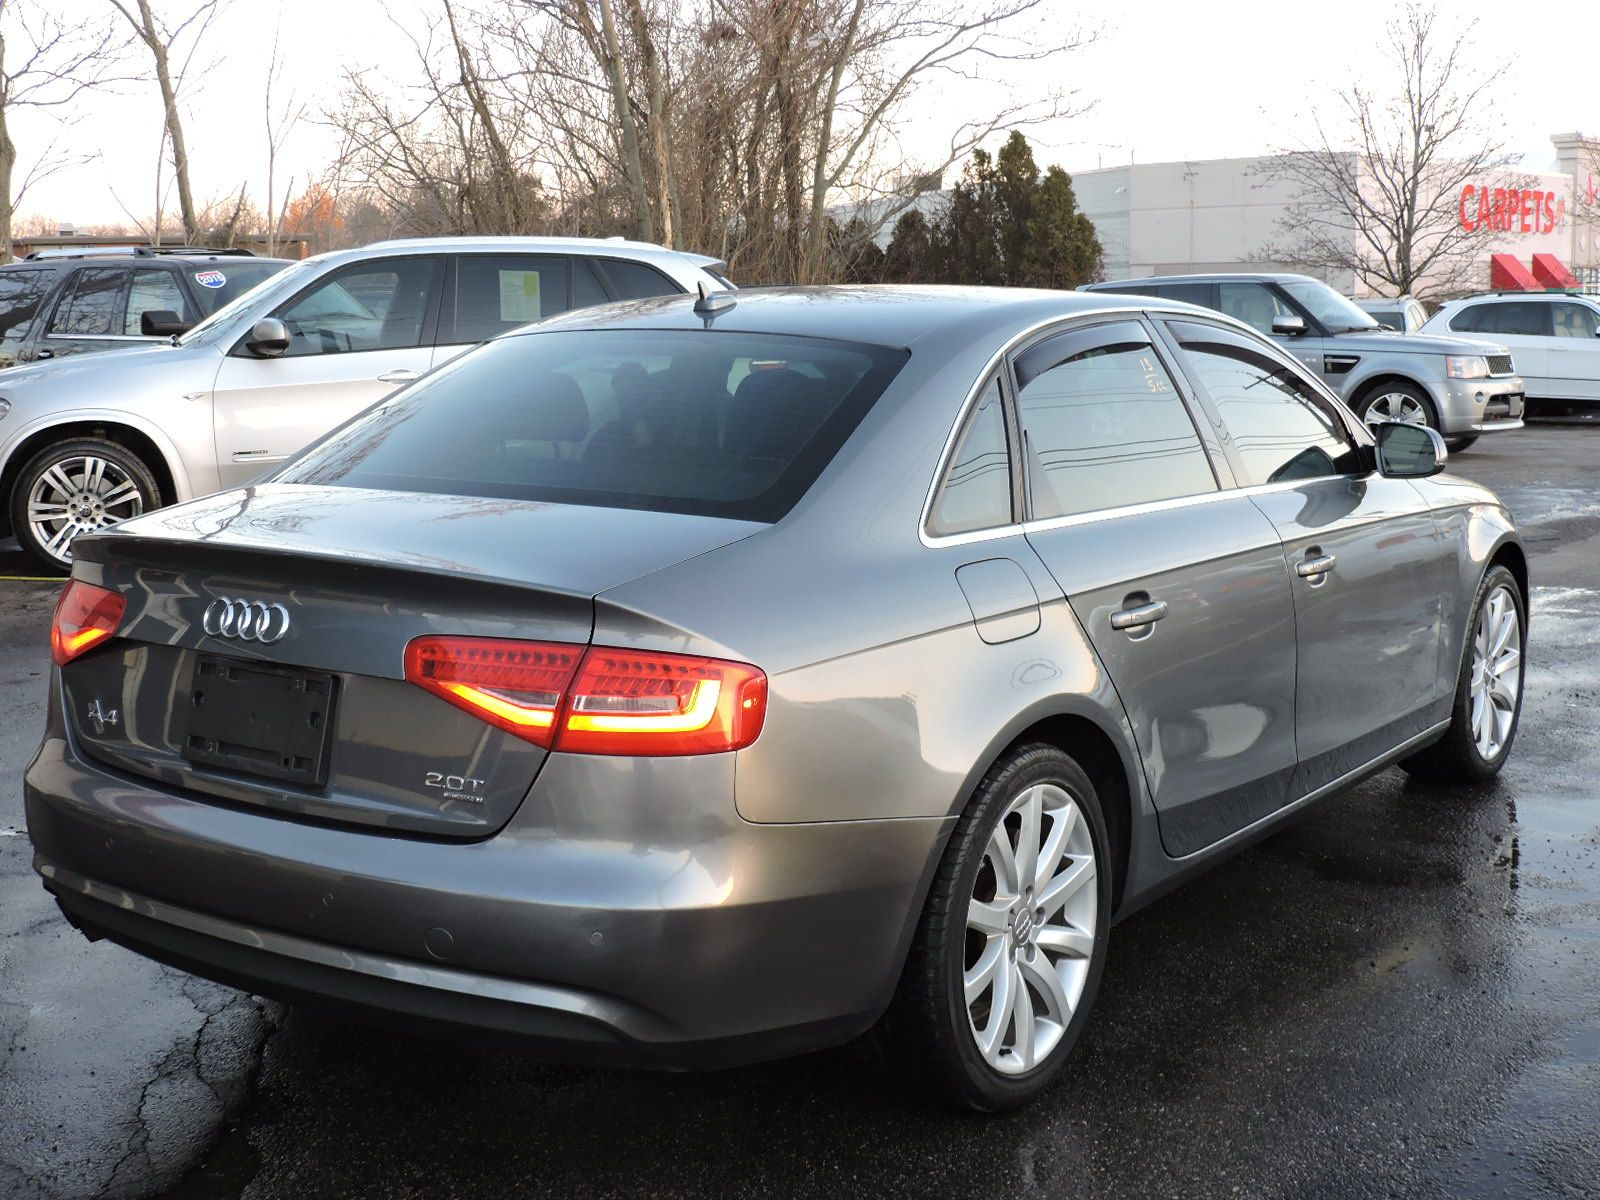 2013 Audi A4 2.0T 6 Speed Quattro Premium Plus AWD